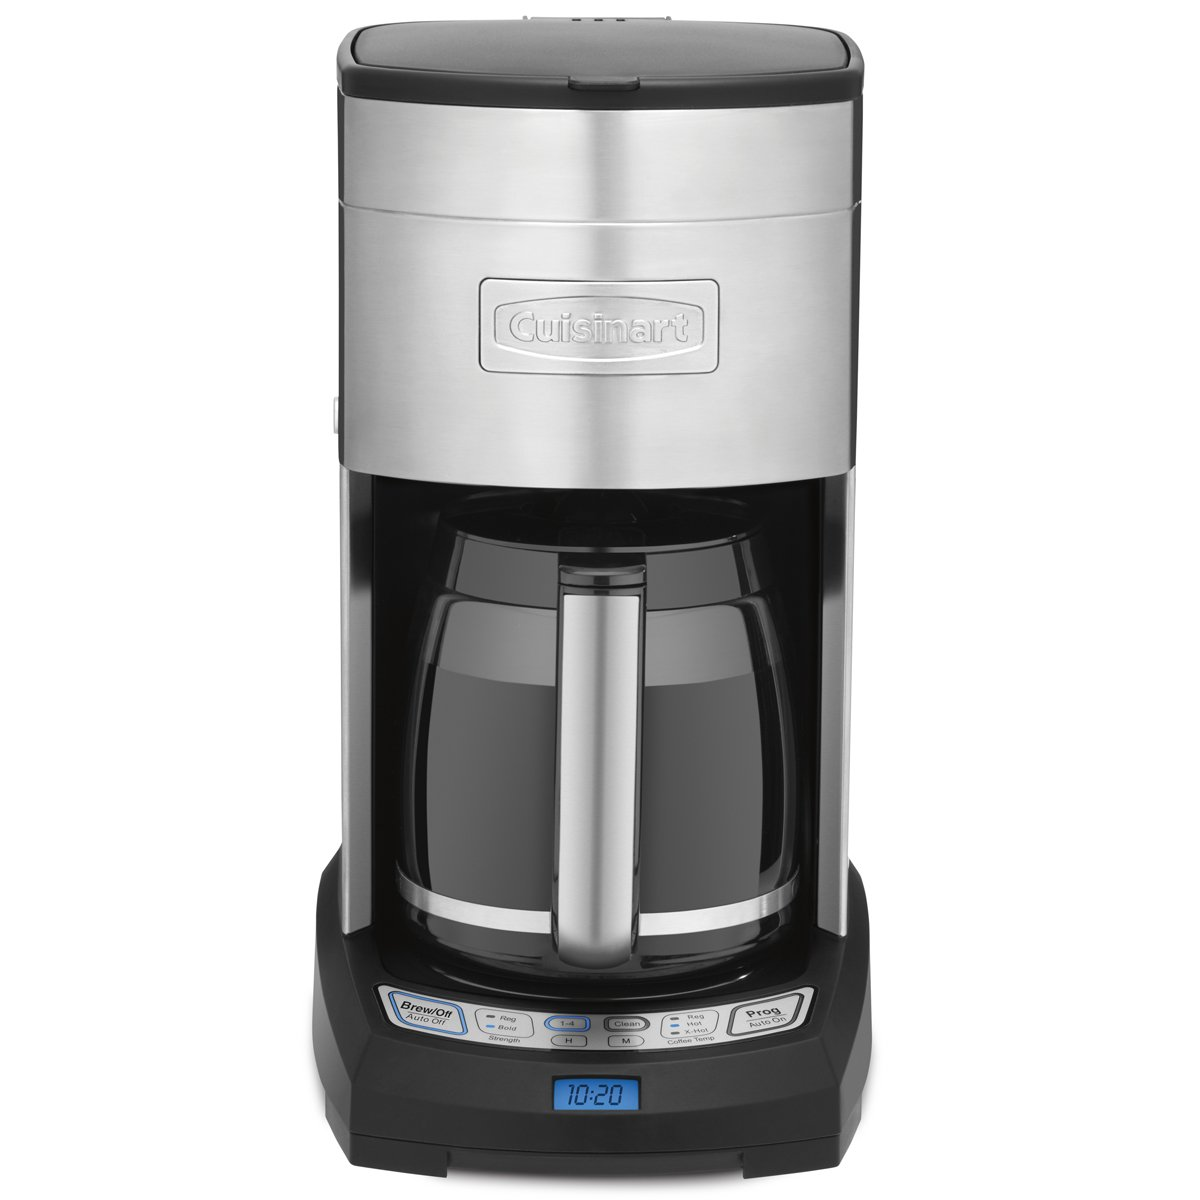 Cuisinart DCC-3650FR Cuisinart DCC-3650FR Extreme Brew 12-Cup Coffee Maker, Silver (Certified Refurbished)